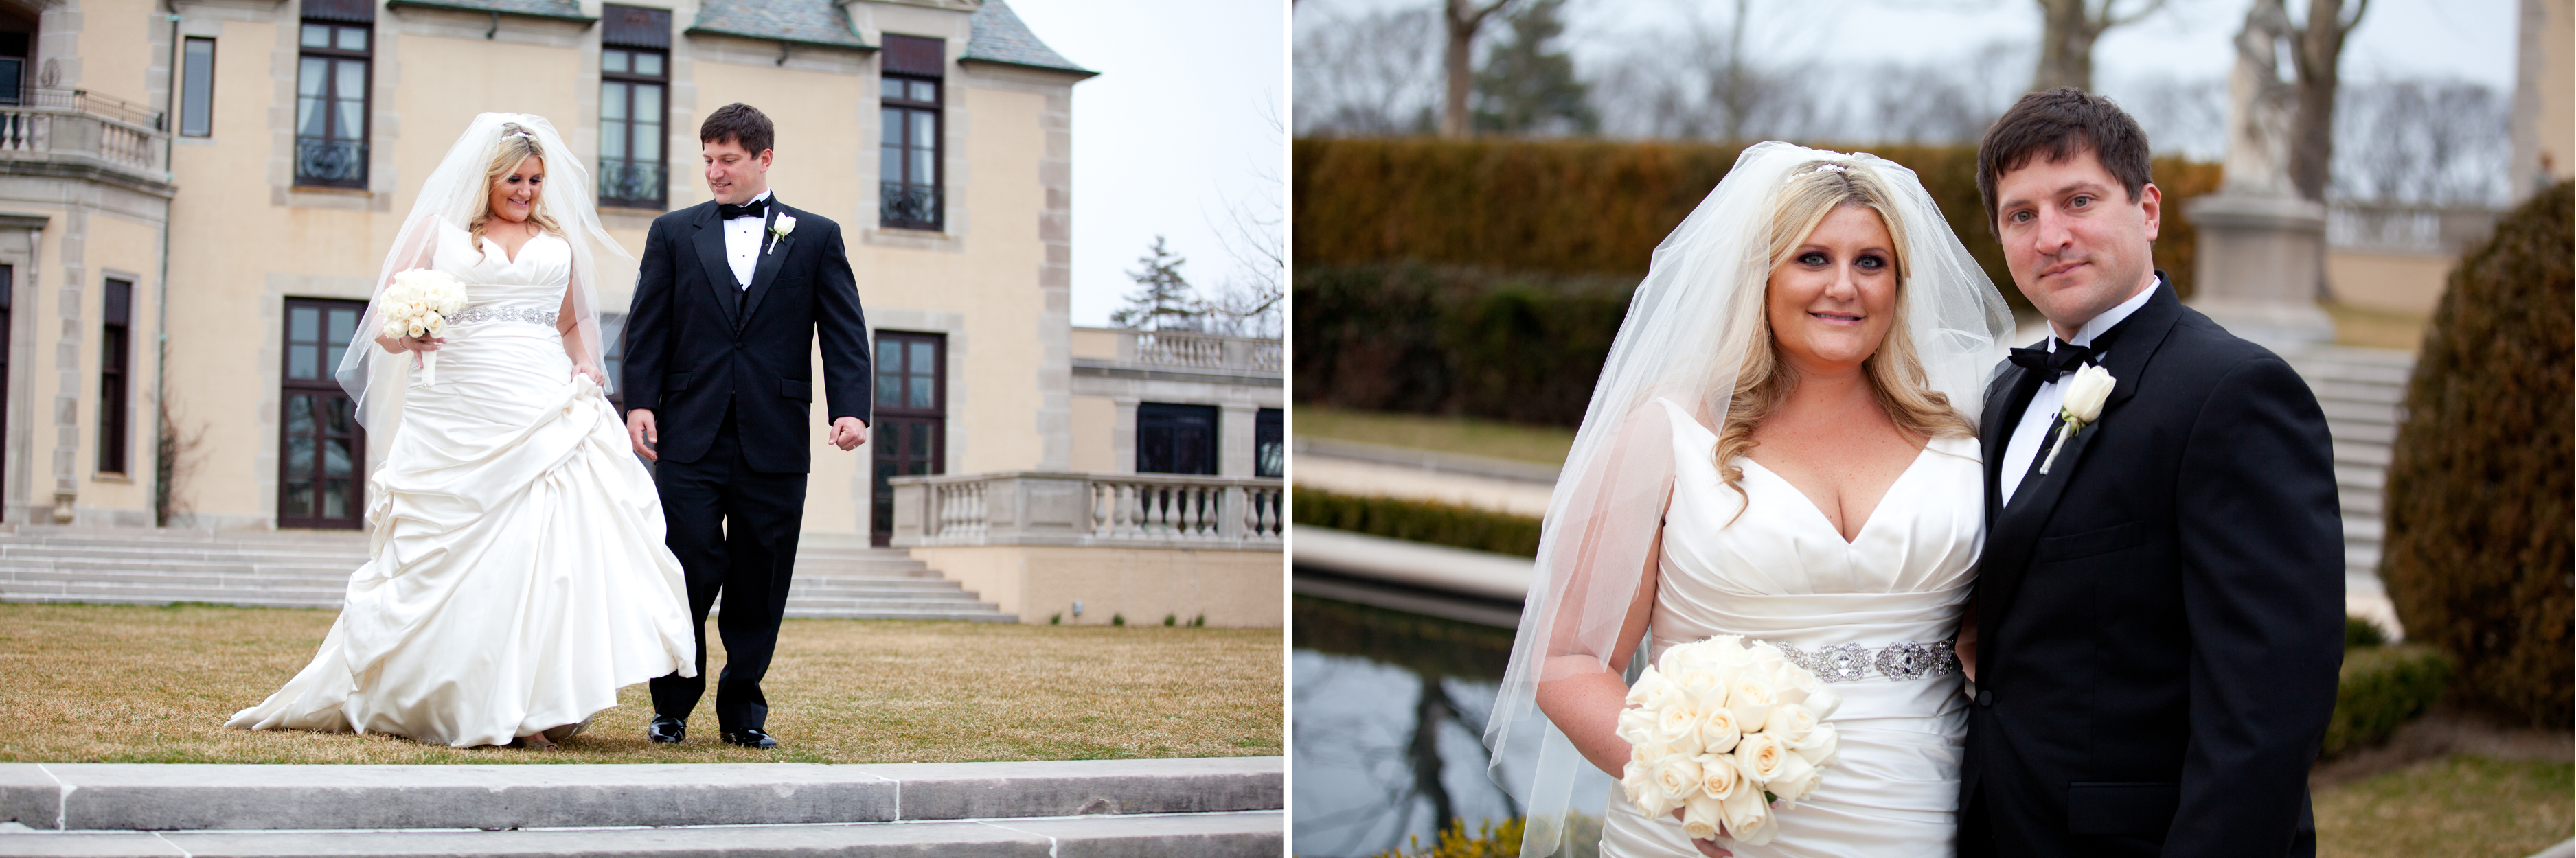 Emma_cleary_photography Oheka Castle25